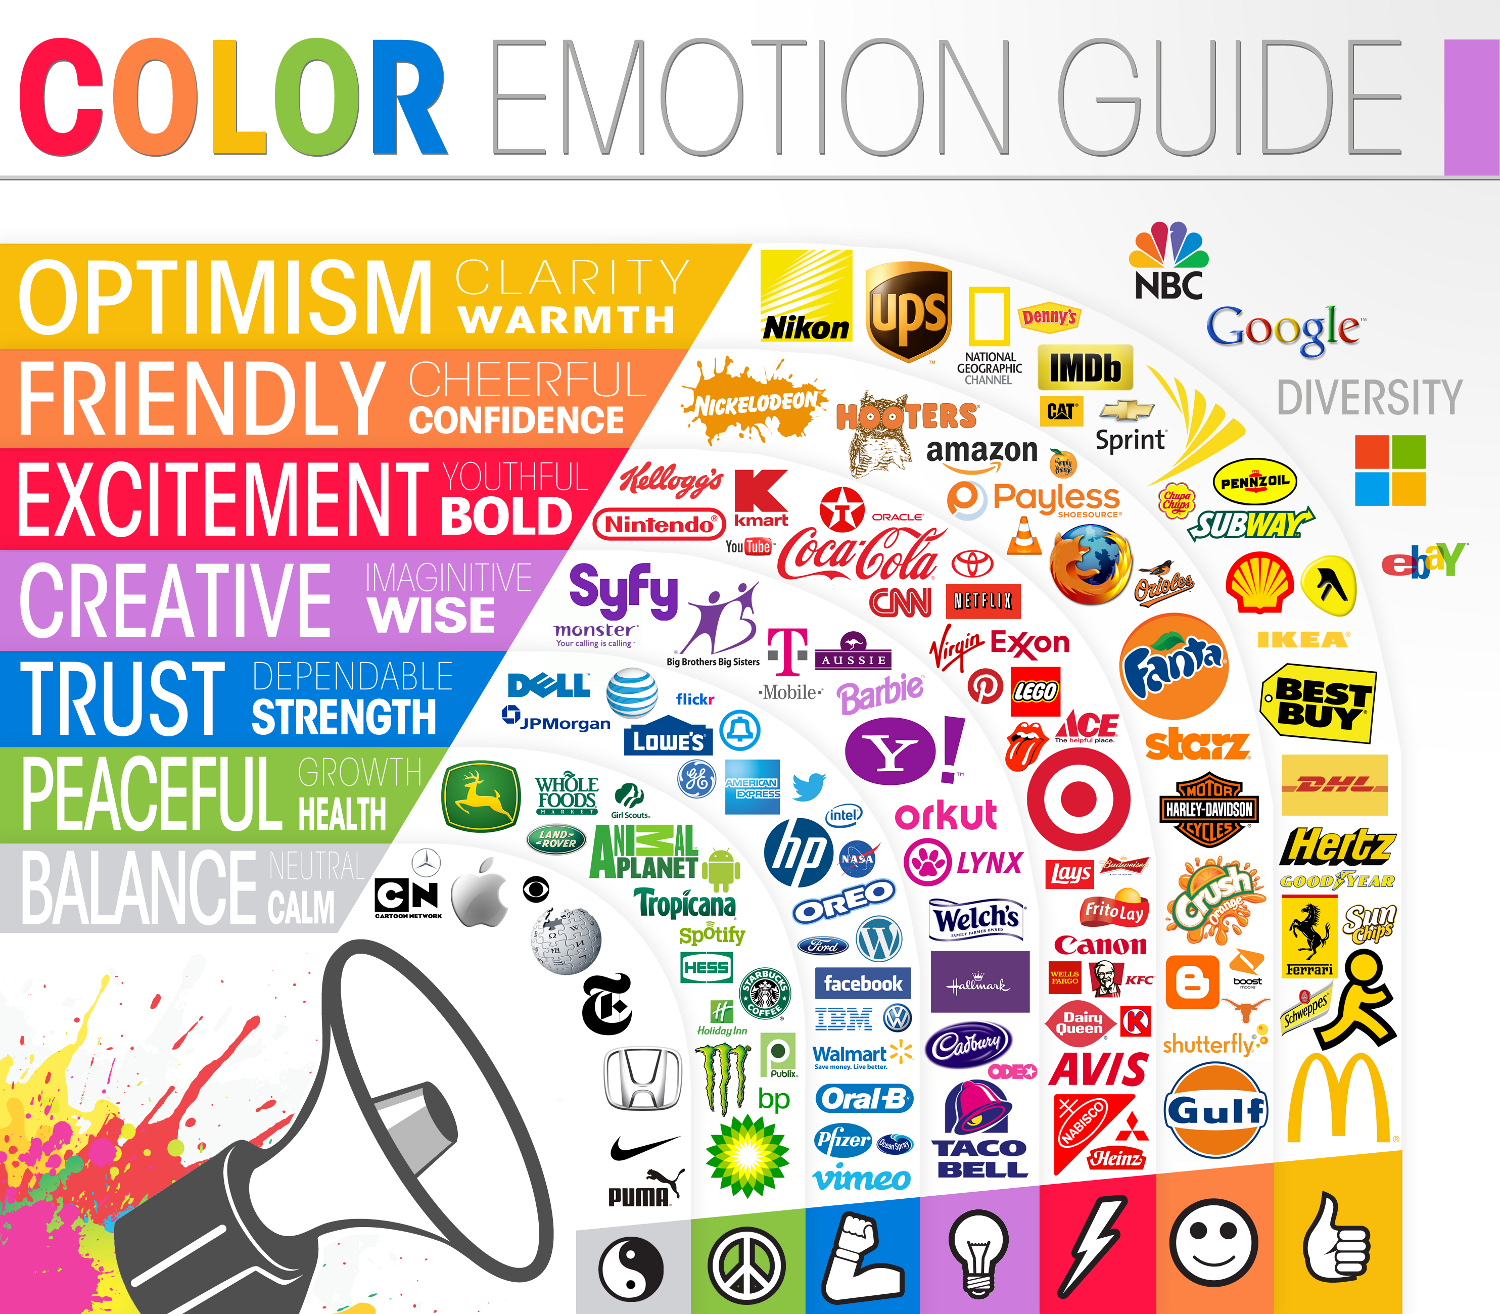 graphic design, color theory